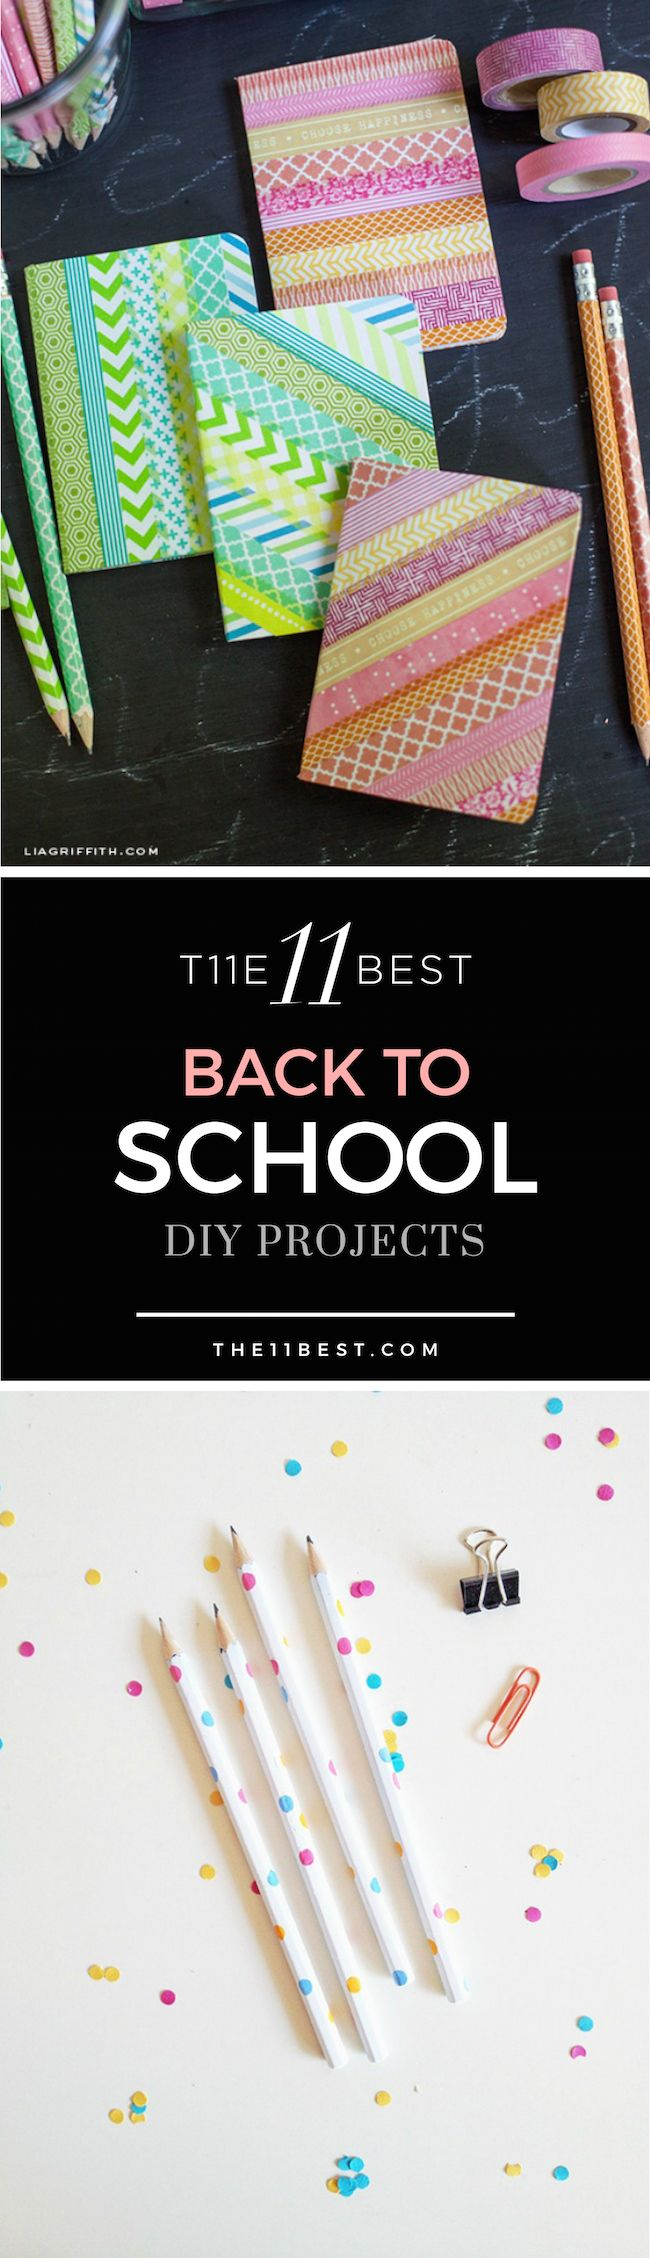 back to school diy projects